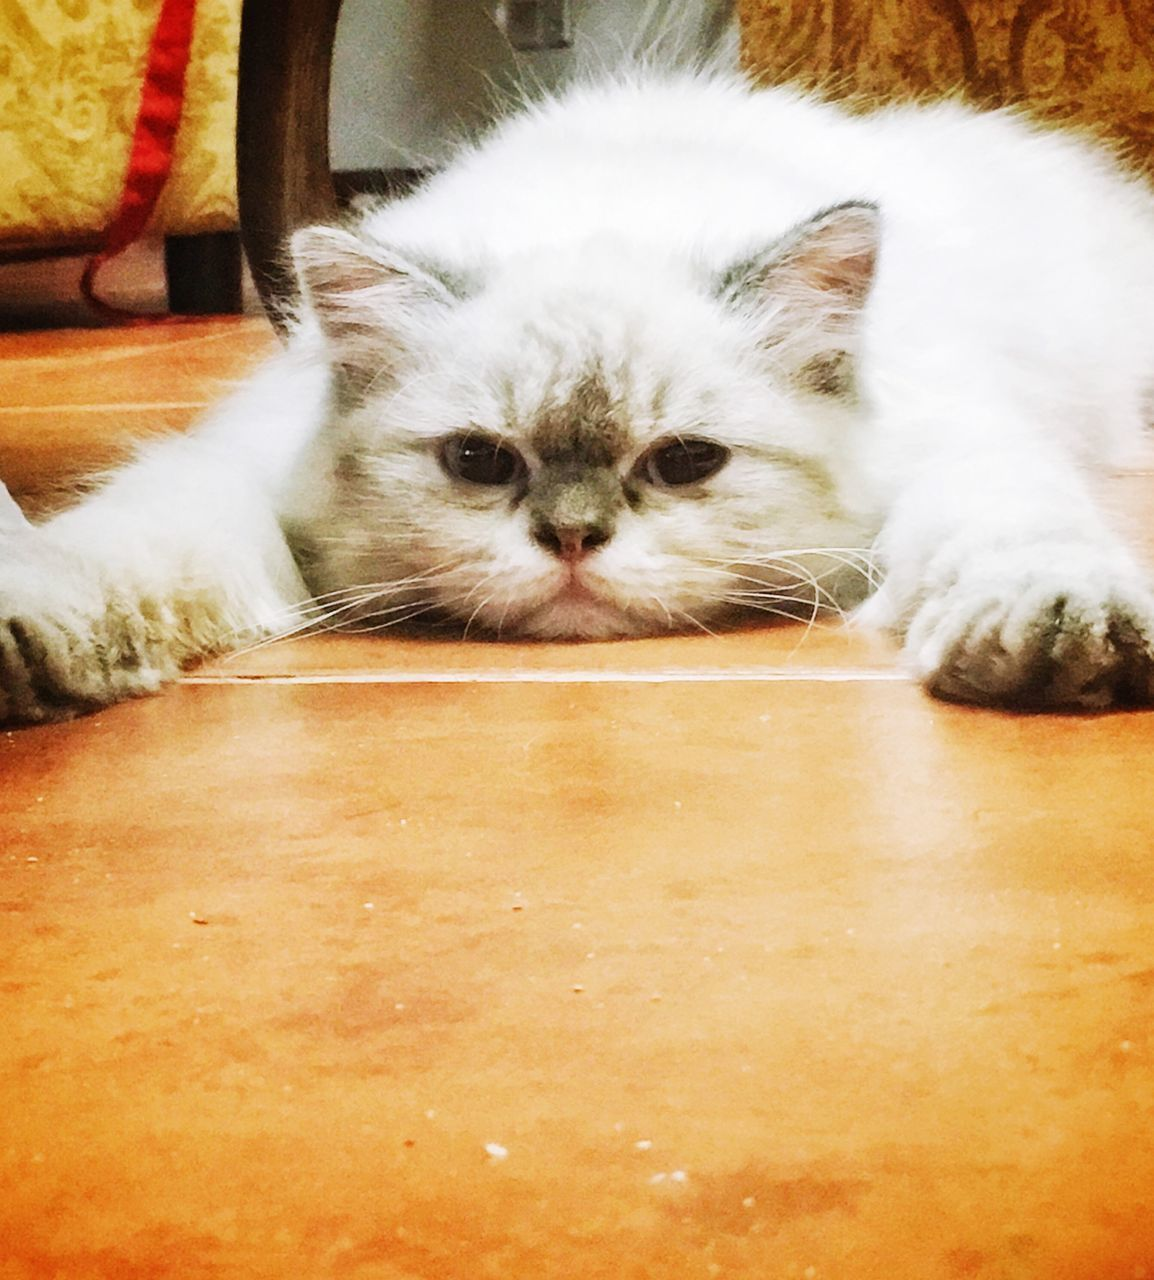 domestic cat, cat, feline, domestic, pets, animal themes, mammal, domestic animals, animal, one animal, vertebrate, relaxation, indoors, portrait, no people, white color, whisker, looking at camera, resting, close-up